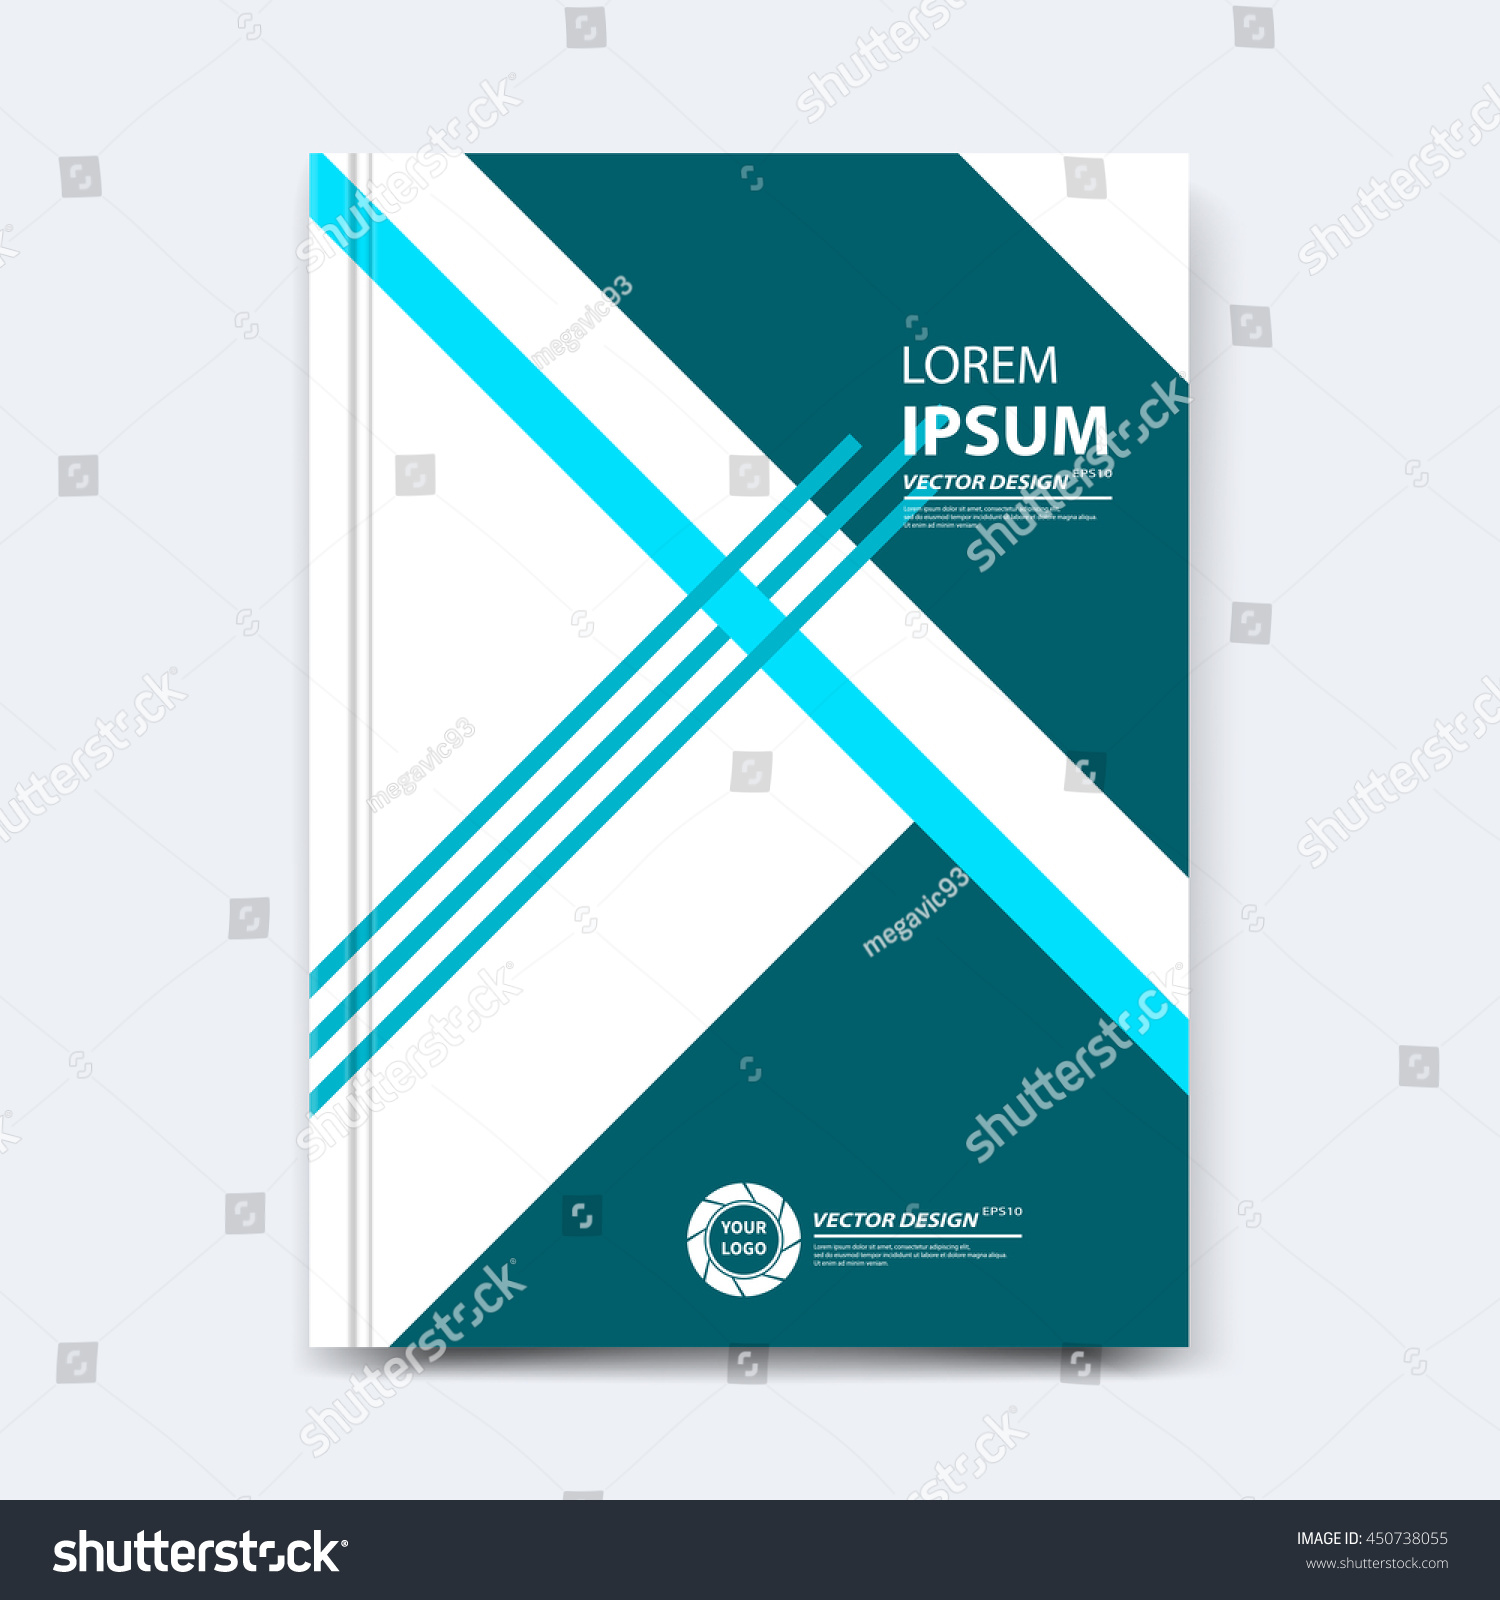 royalty abstract vector design for cover 450738055 stock abstract vector design for cover poster banner flayer business card magazine annual report title page brochure template layout or booklet